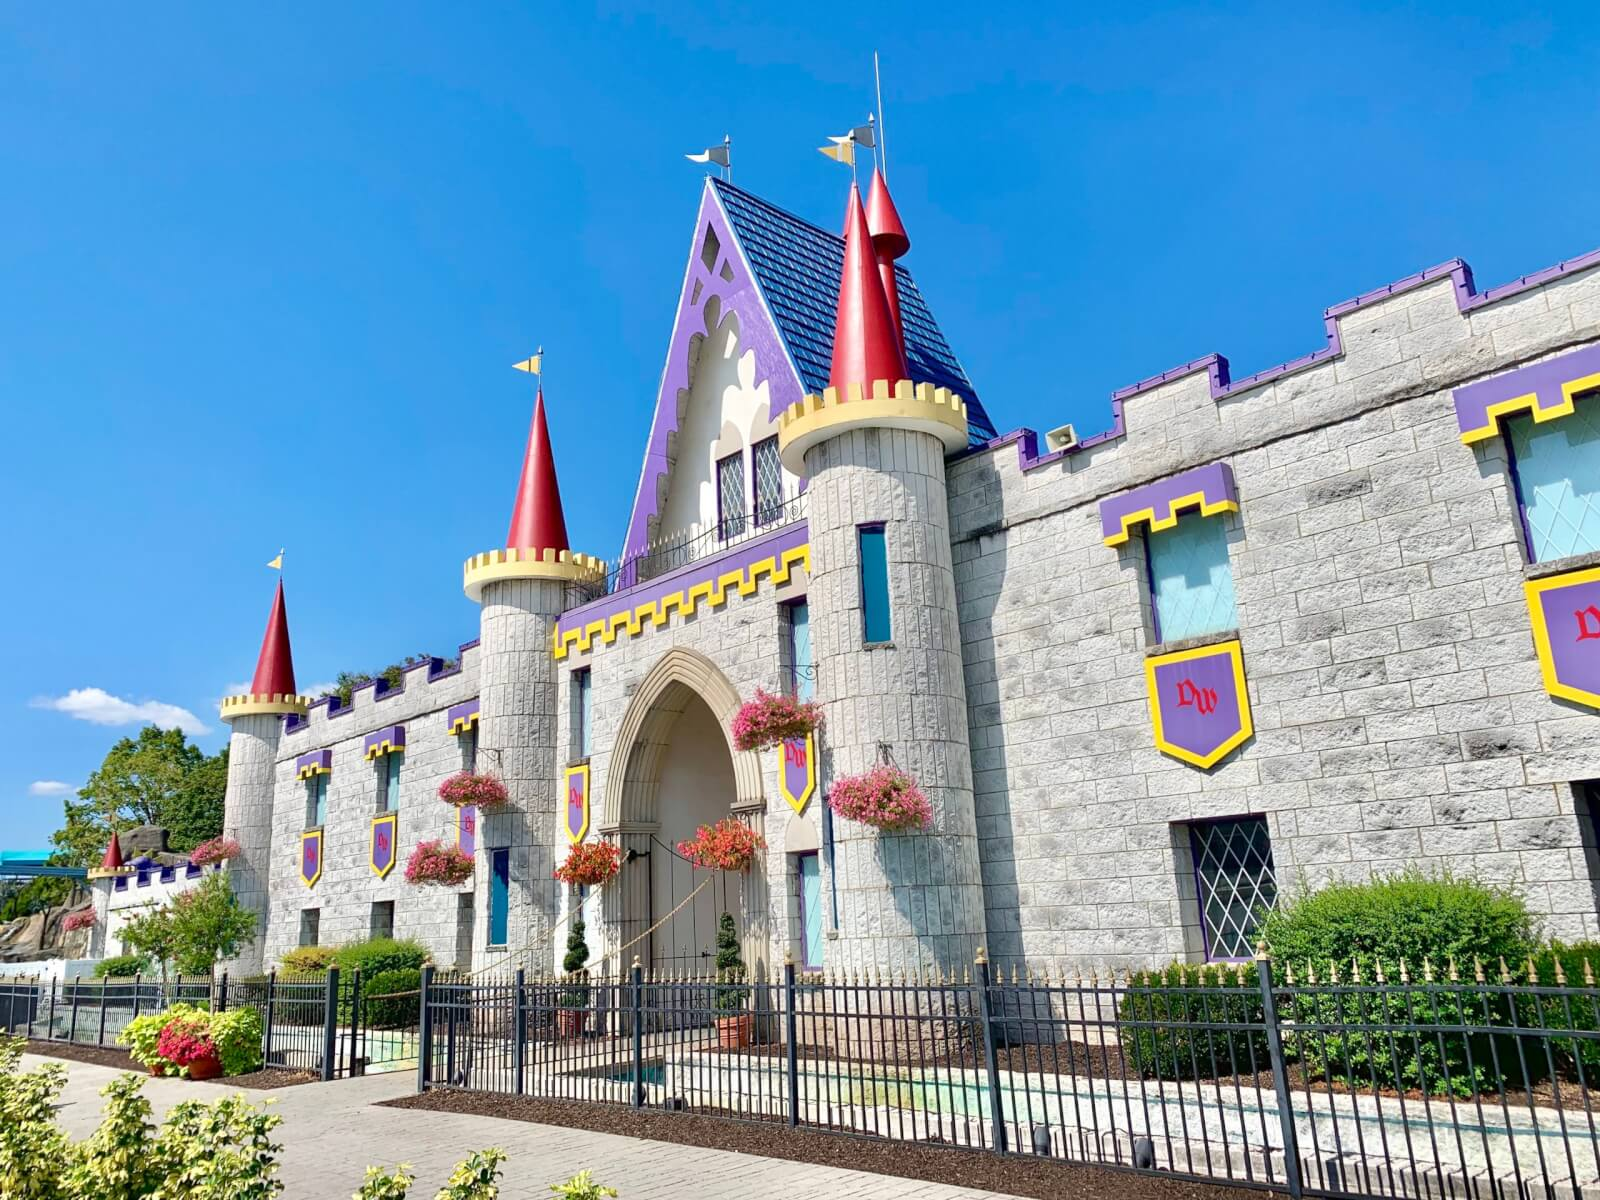 The castle entrance of Dutch Wonderland Family Amusement Park